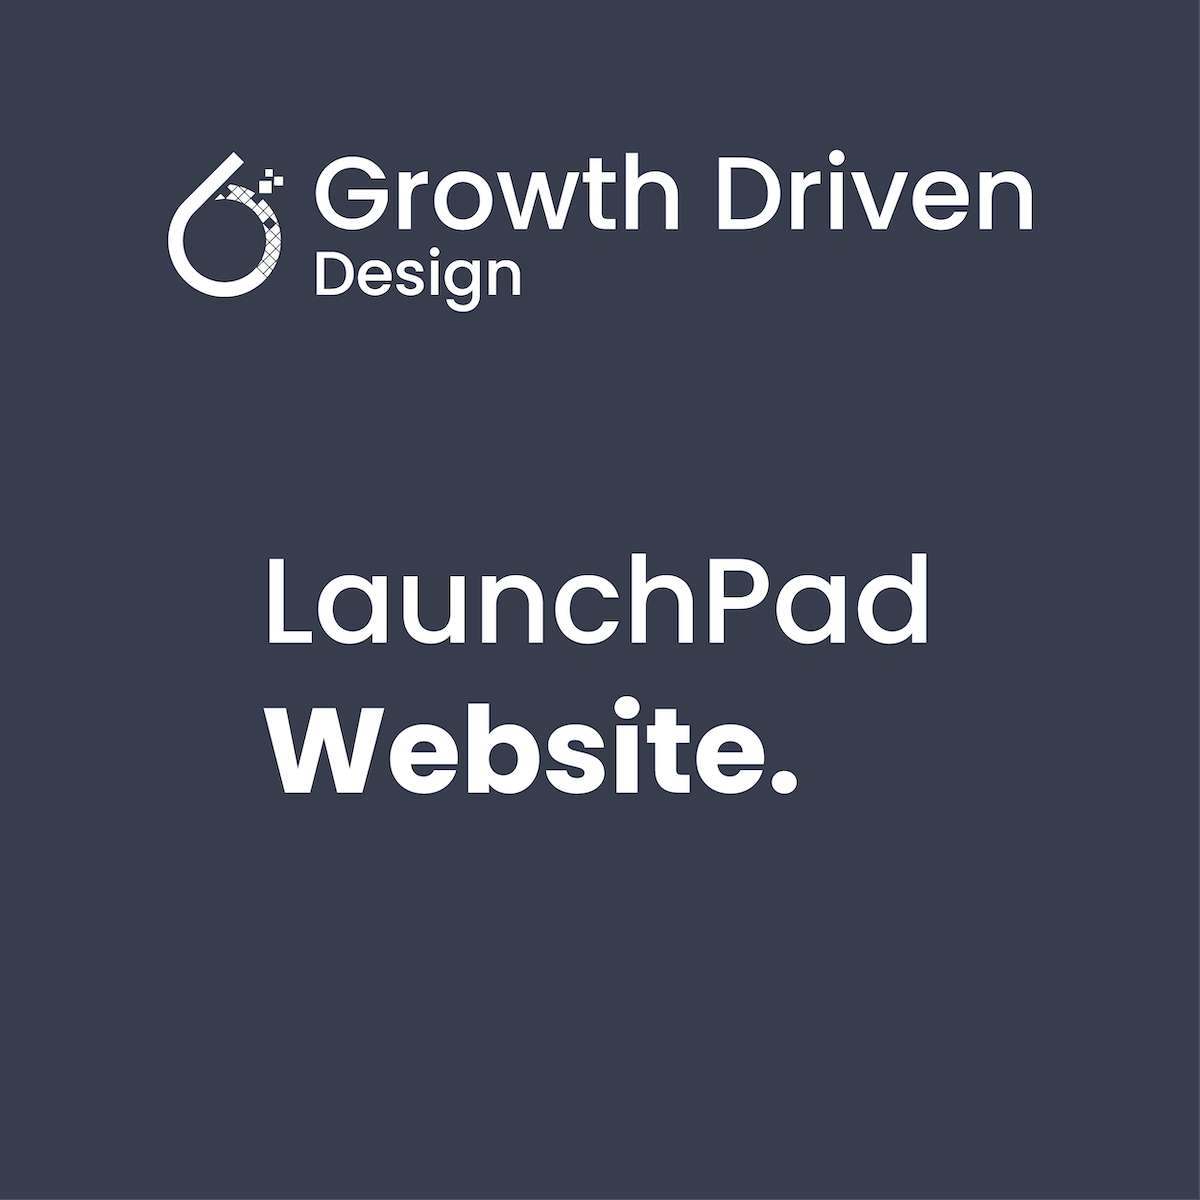 6t30 - GDD_LaunchPad Website